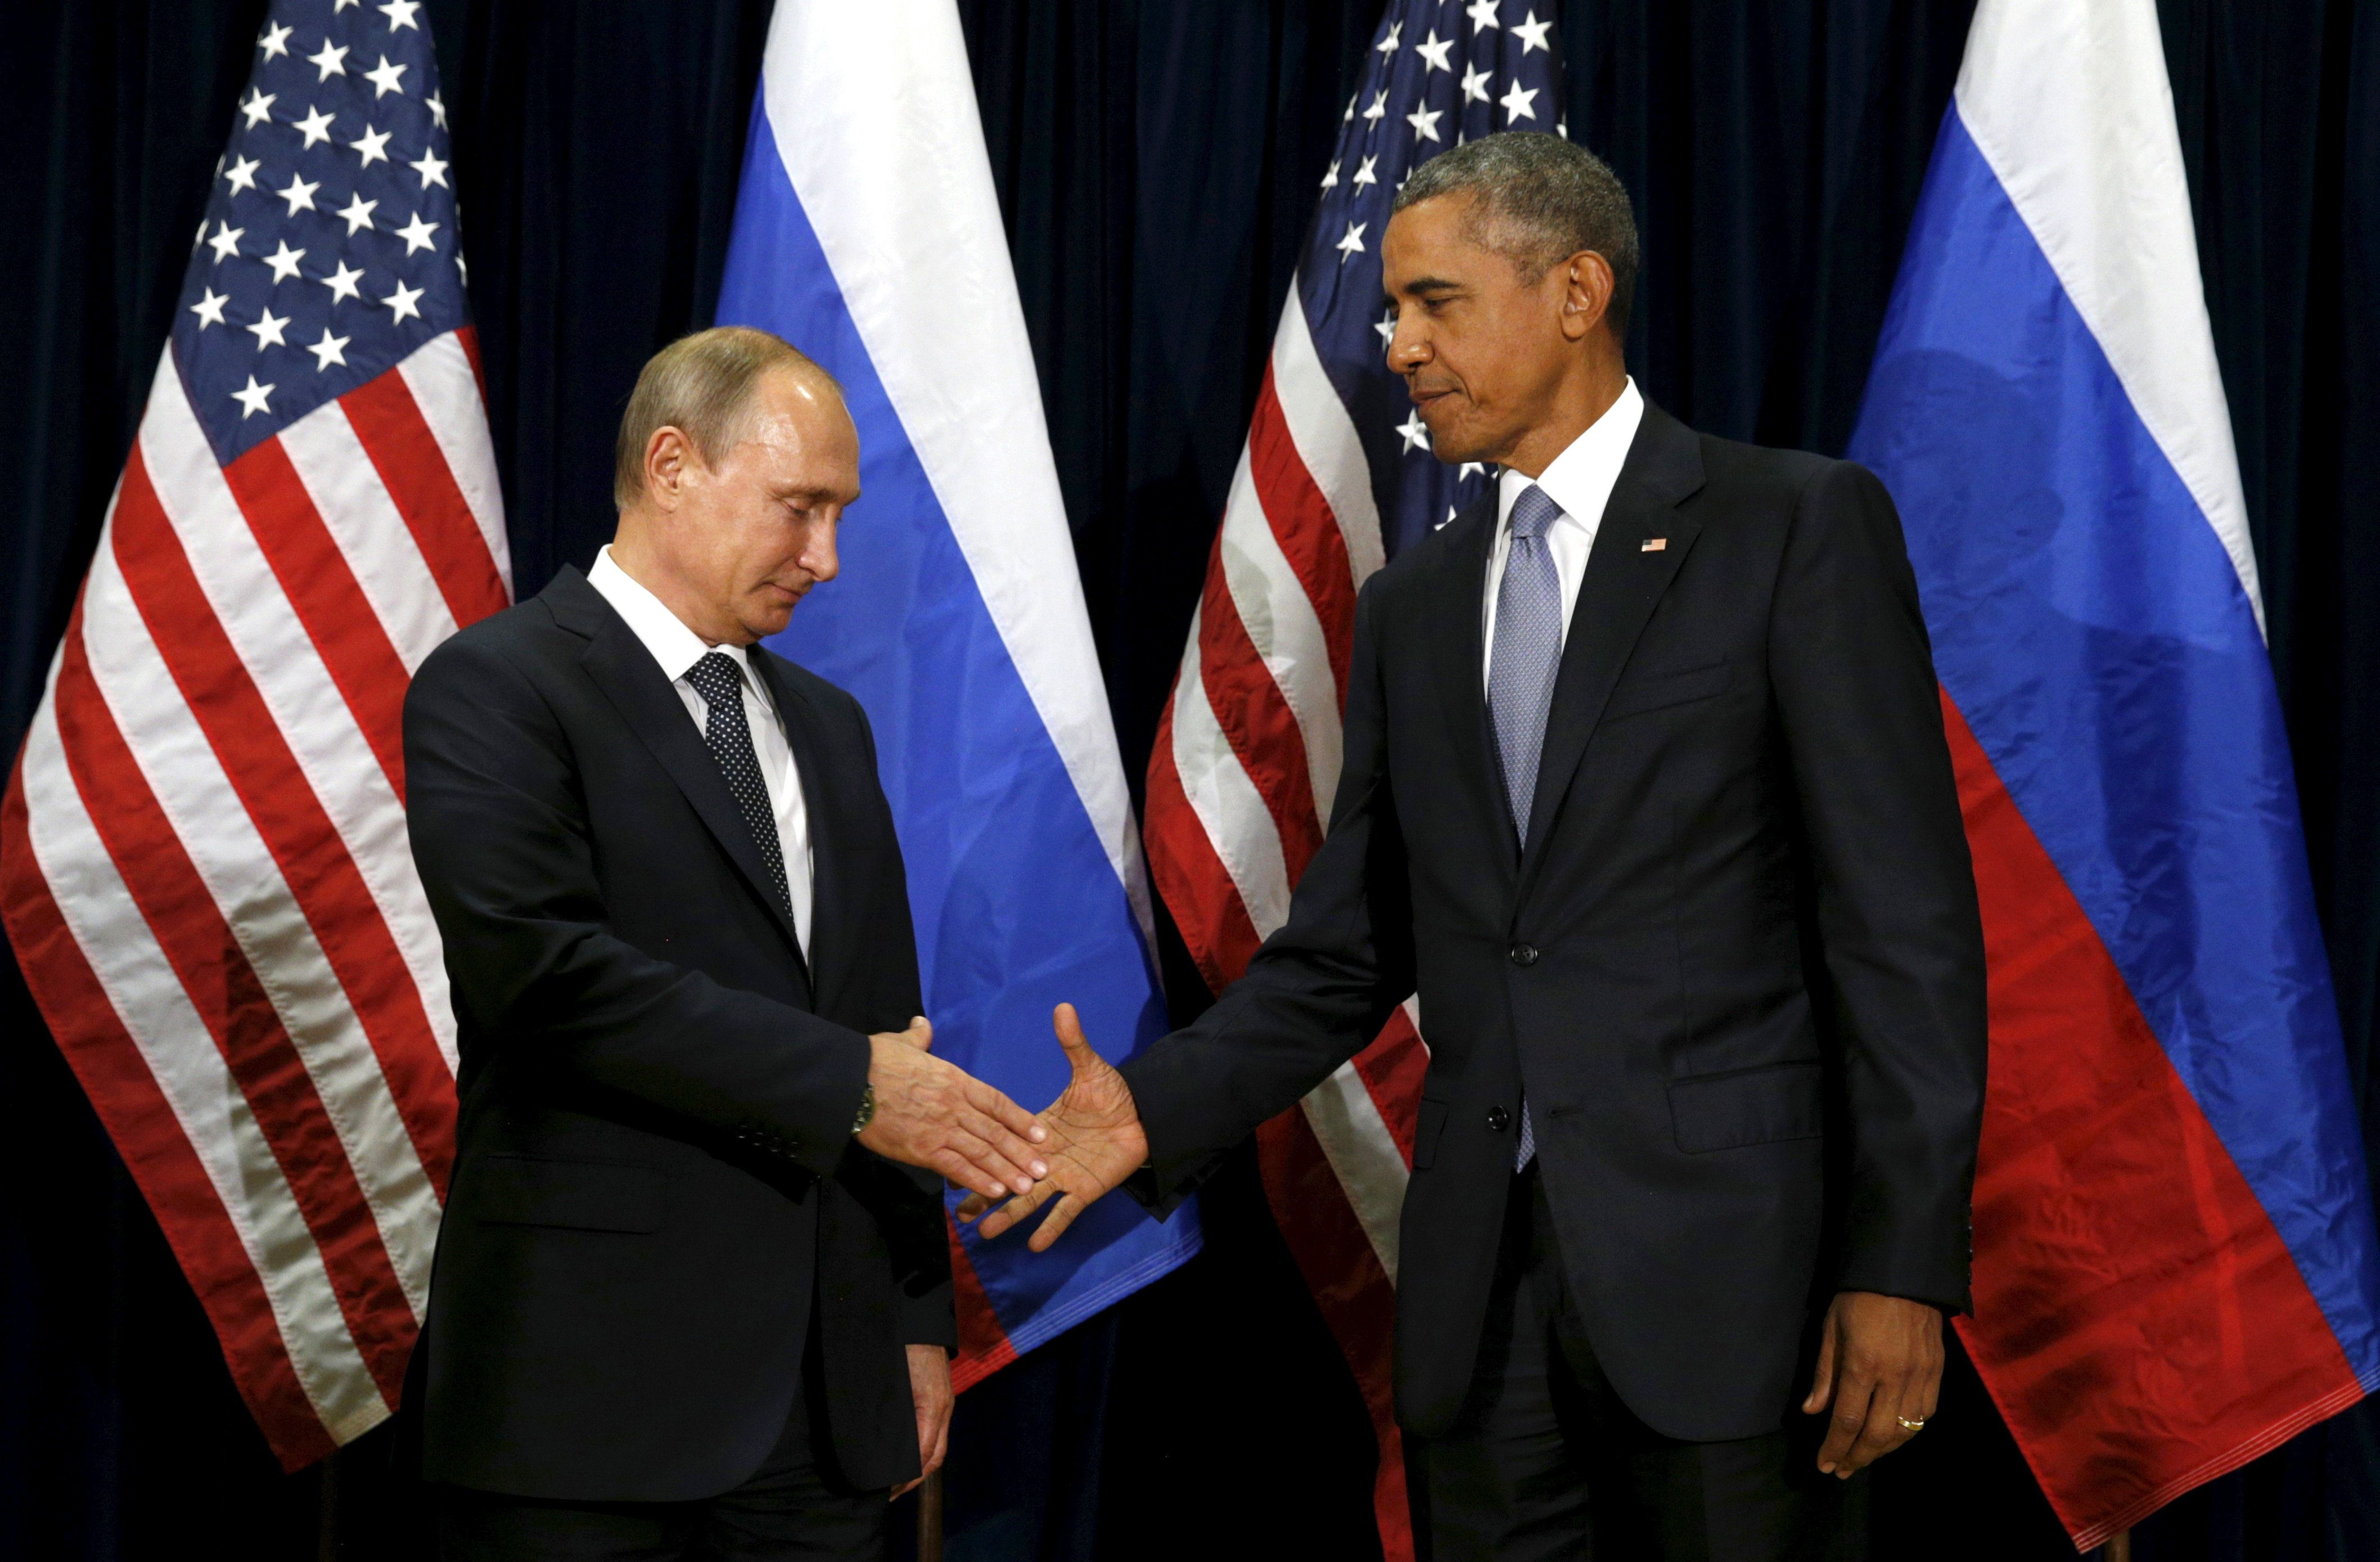 Obama Vows Action Against Russia For Hacking DNC